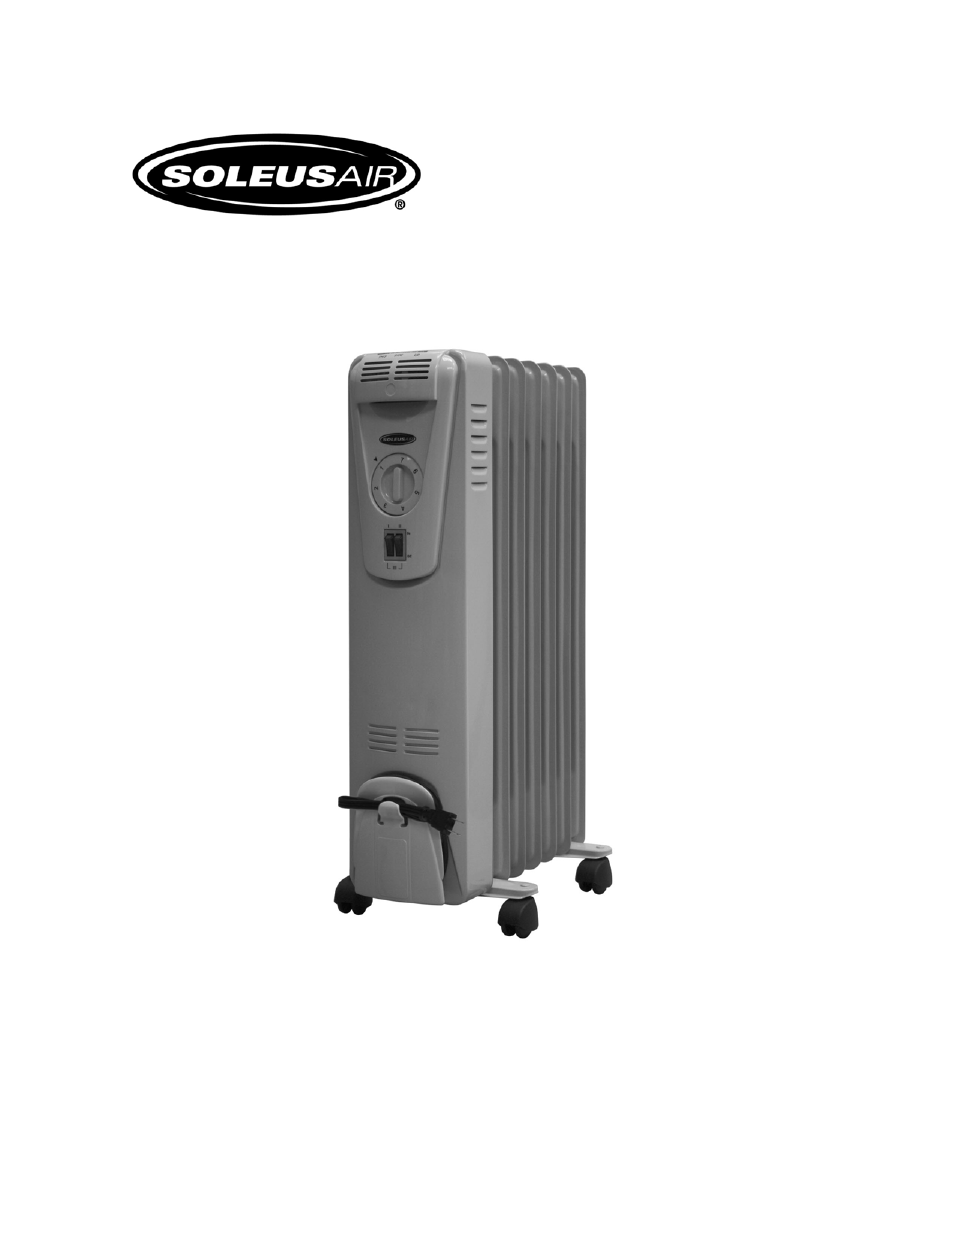 Soleus Air Heater Wiring Diagram Free For You Computer Terminal Images Gallery